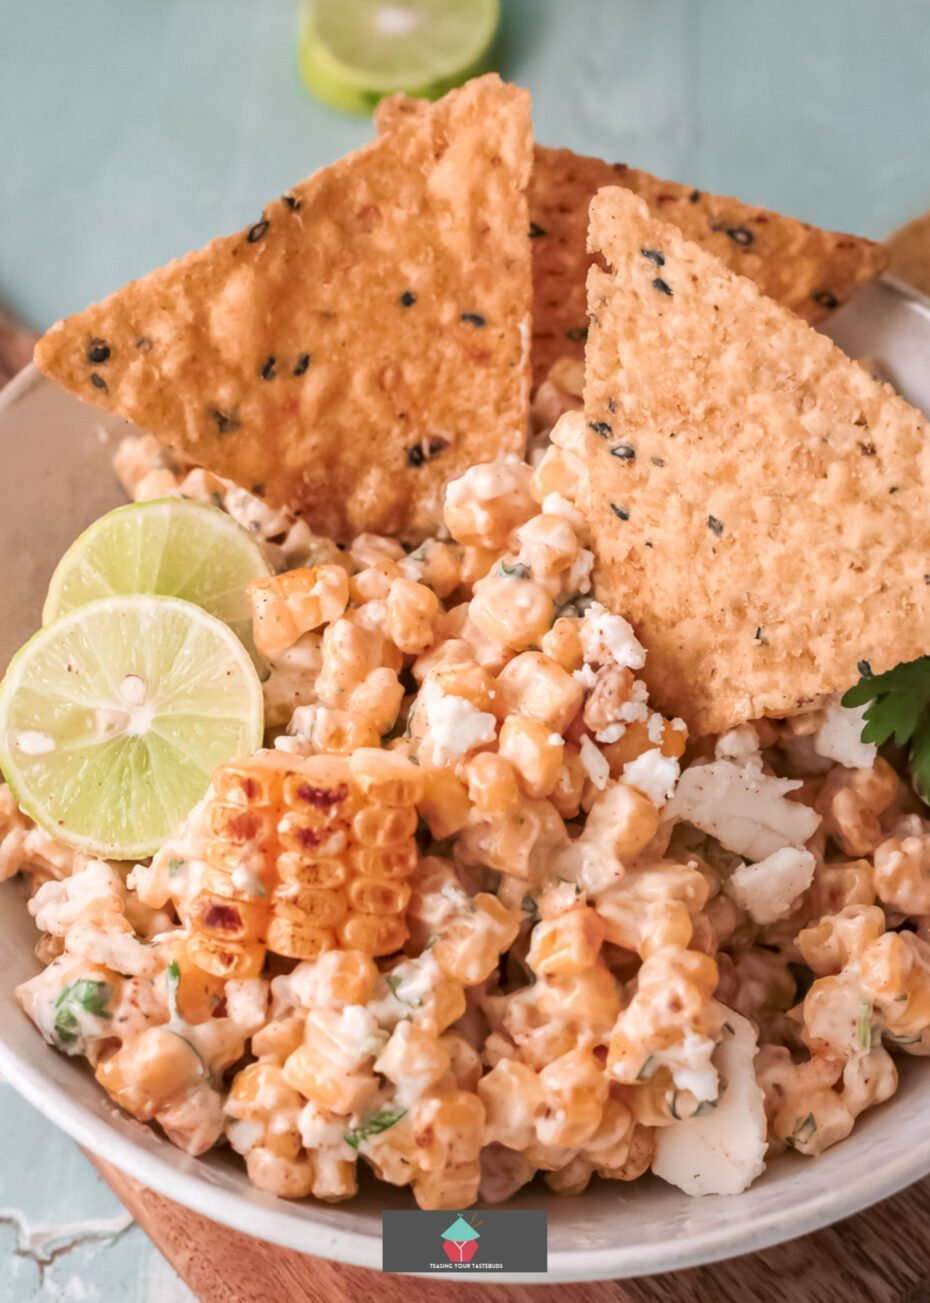 Mexican Street Corn Dip, a traditional street food, serve warm or cold, with tortilla chips or with tacos. An easy dip recipe made of fresh corn, creamy mayo, and sour cream, a splash of lime, and Mexican Cotija cheese. The best ever dip you'll eat!